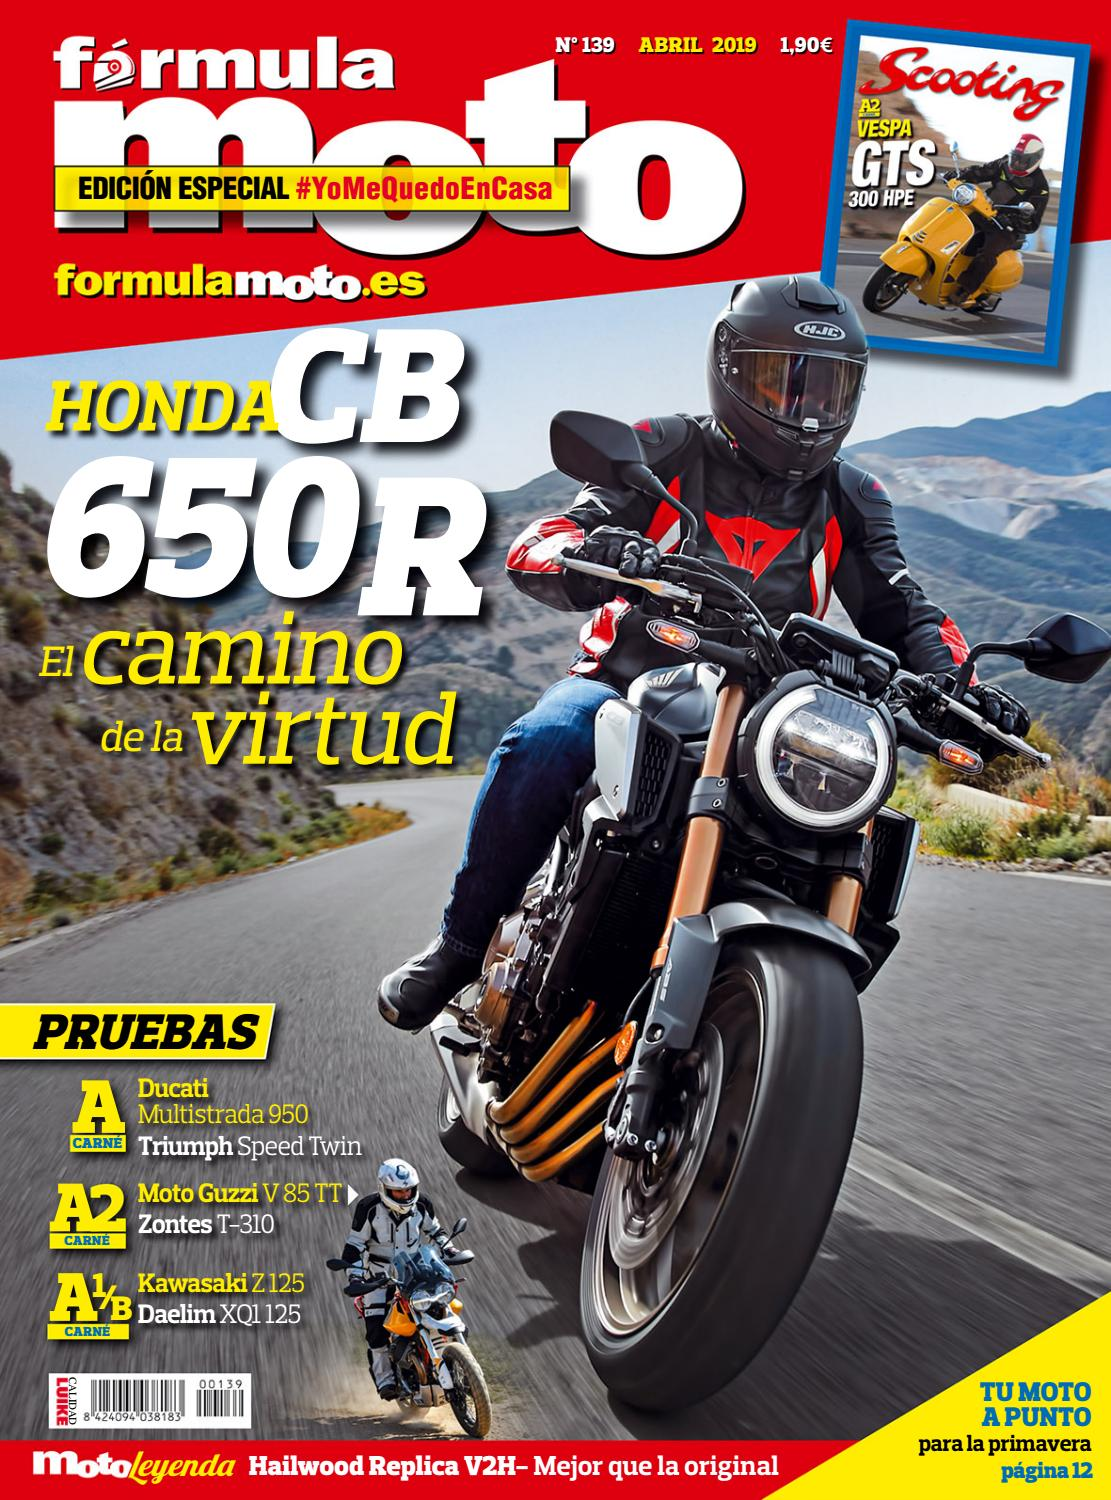 Fórmula Moto 139 Abril 2019 By Luike Issuu